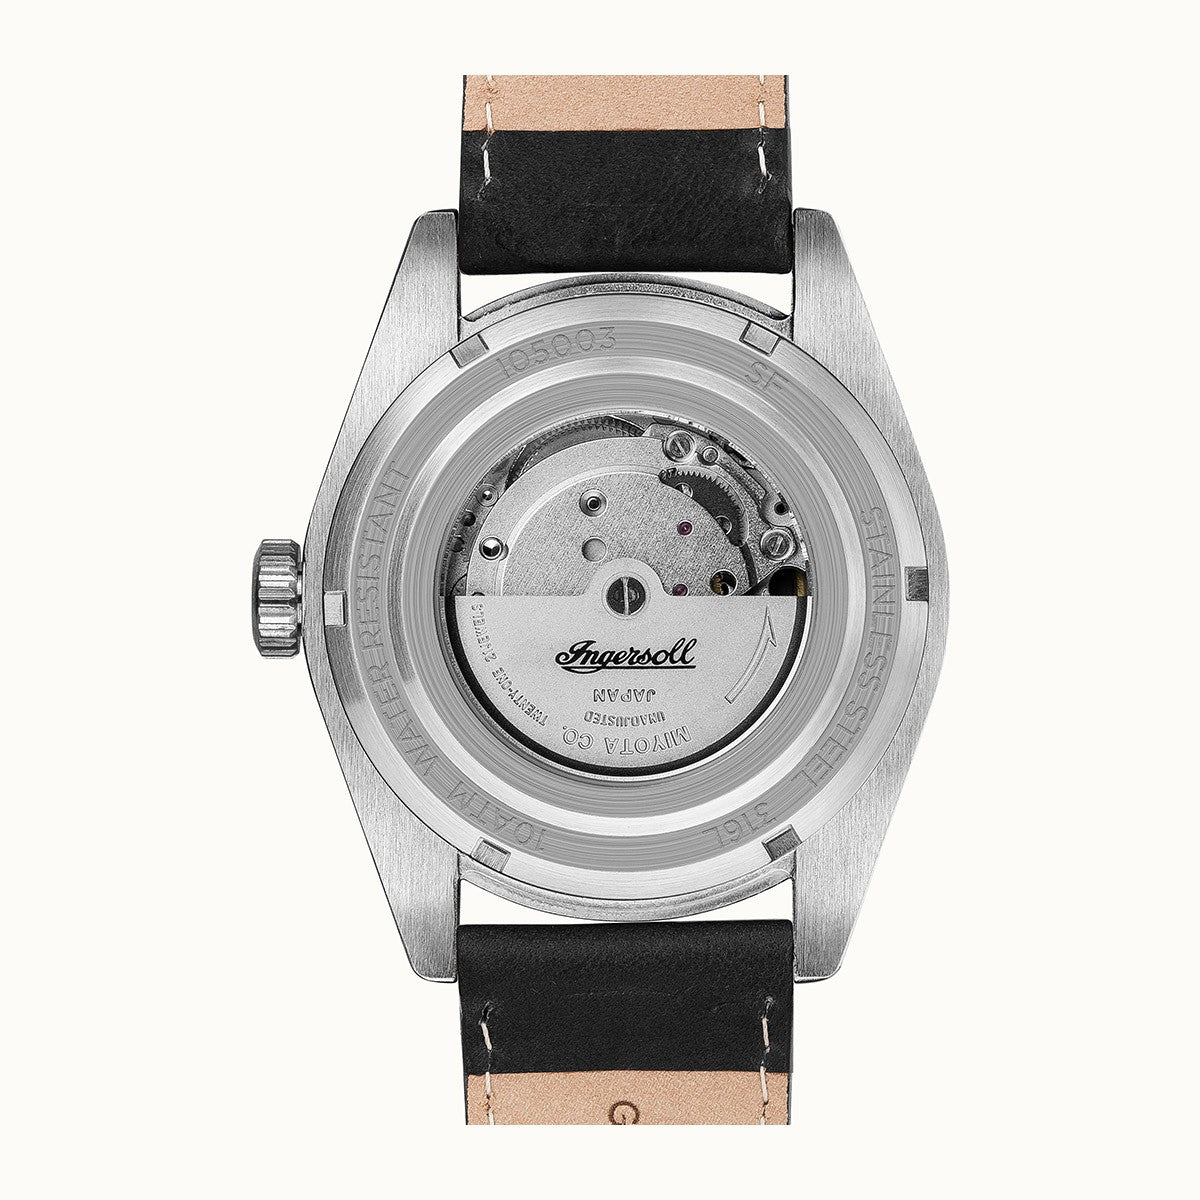 Ingersoll Men's I05003 The Scovill Automatic Watch